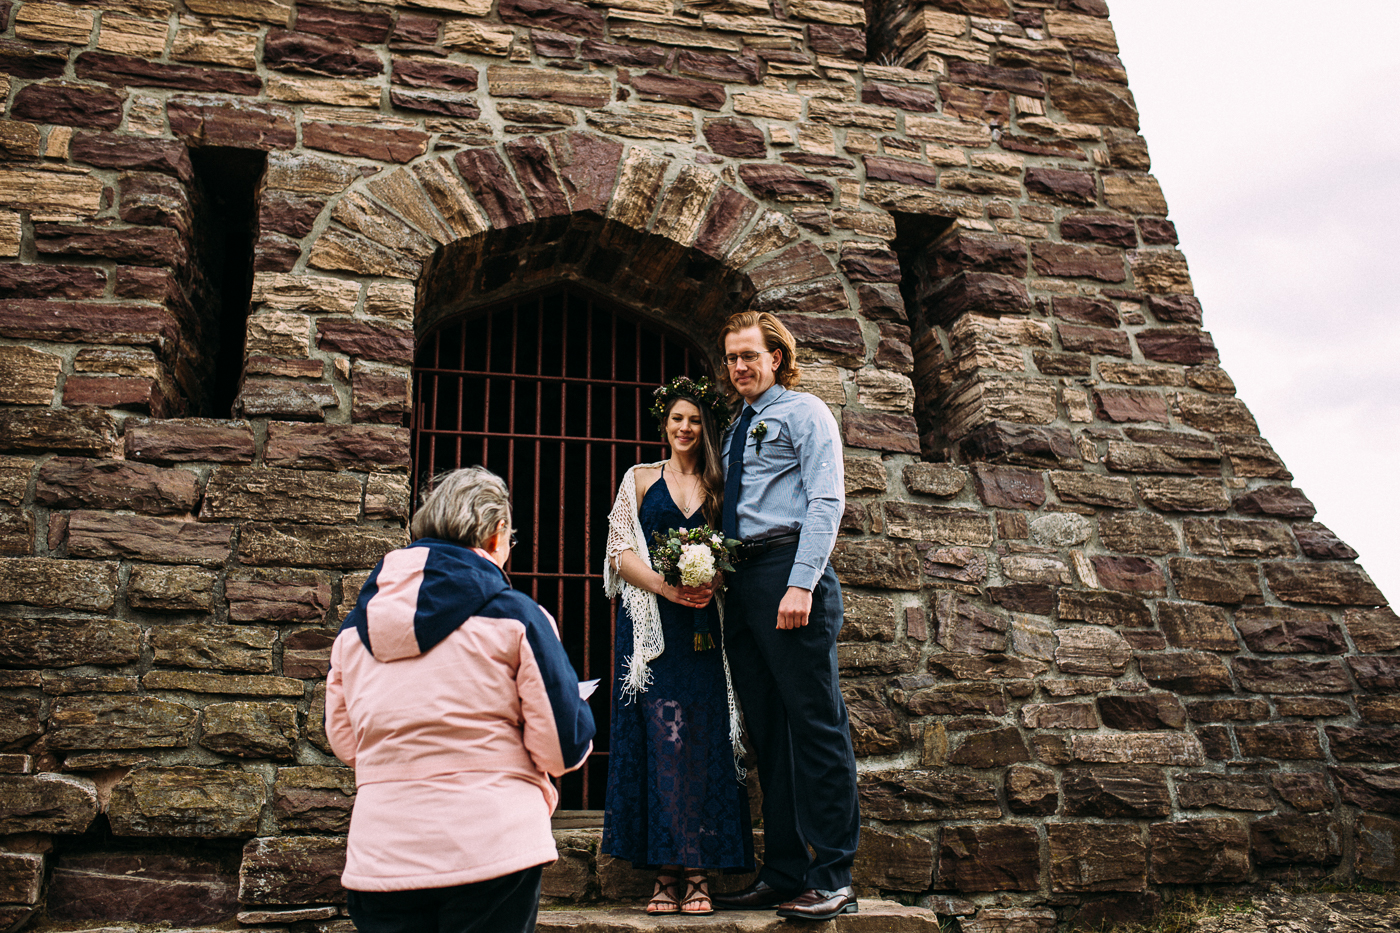 erinwheat photography-jplaurenelopement6576